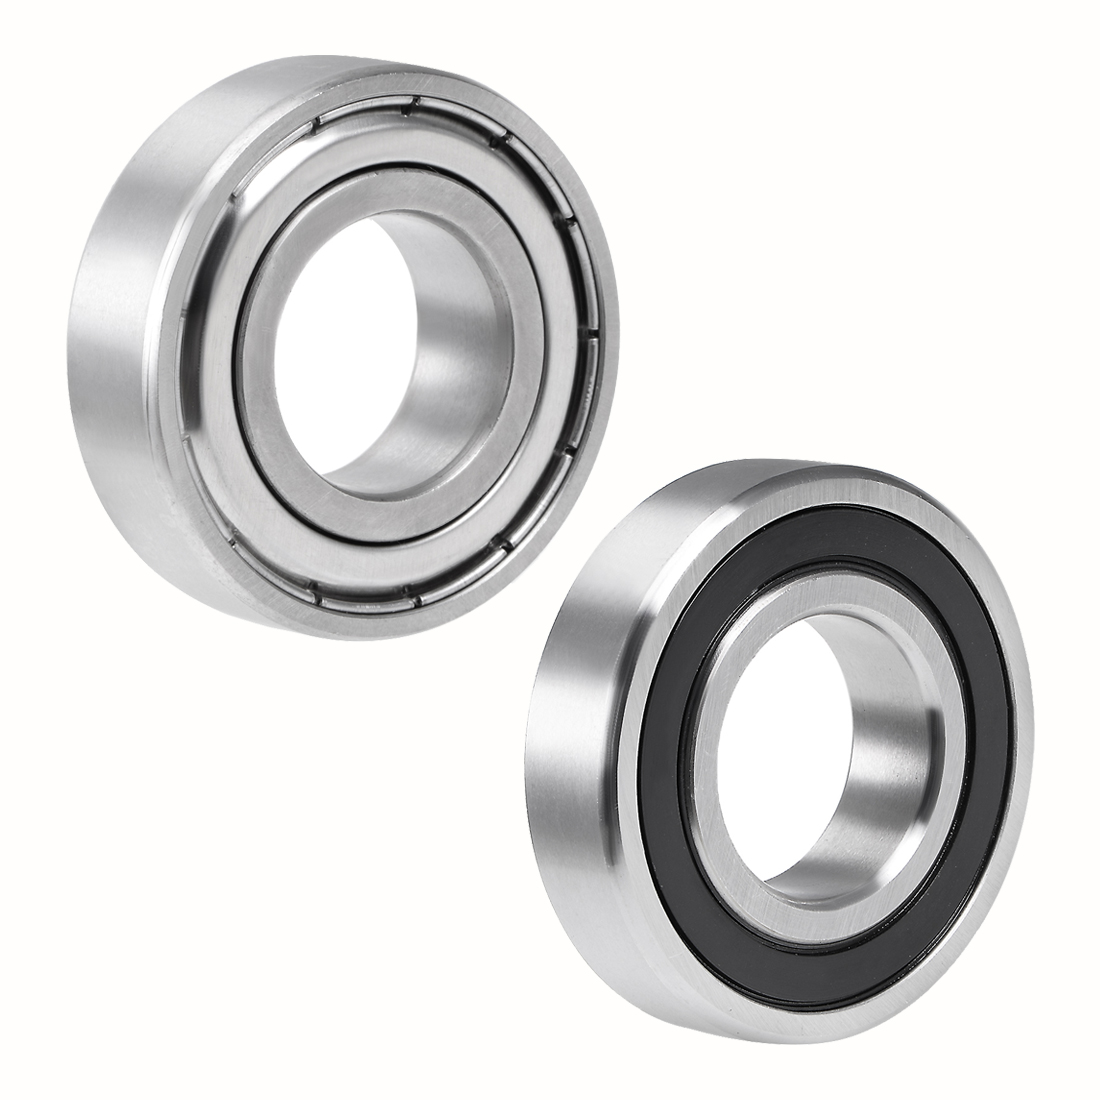 uxcell U-Groove Ball Bearing NPP KDD Guide Pulley Bearings for 5mm 6mm 10mm 16mm 25mm Shaft for Furniture Hardware Accessory image